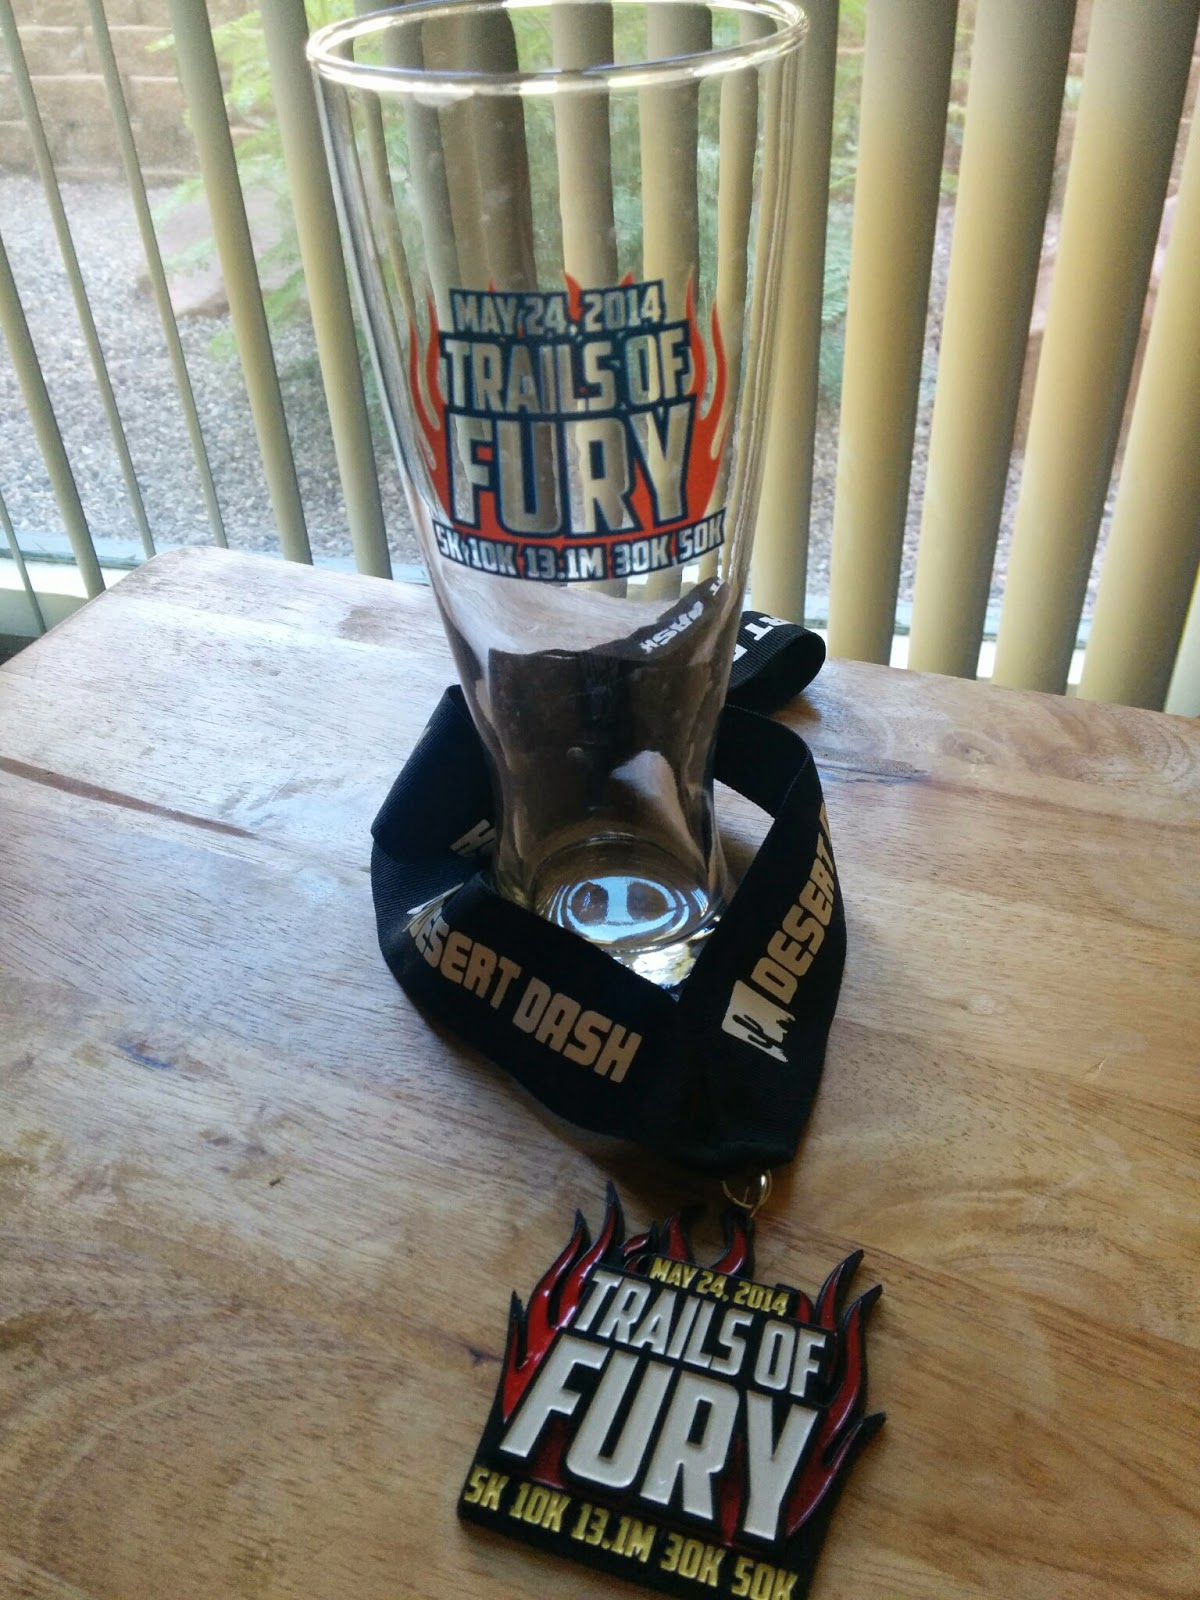 Trails of Fury 2014 race medal and pilsner